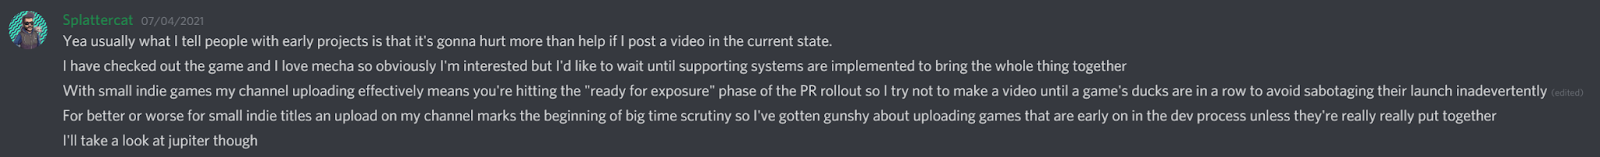 Splattercat: I have checked out the game and I love mechs so obviously I;m interested but Id like to wait until supporting system are implemented to bring the whole thing together.